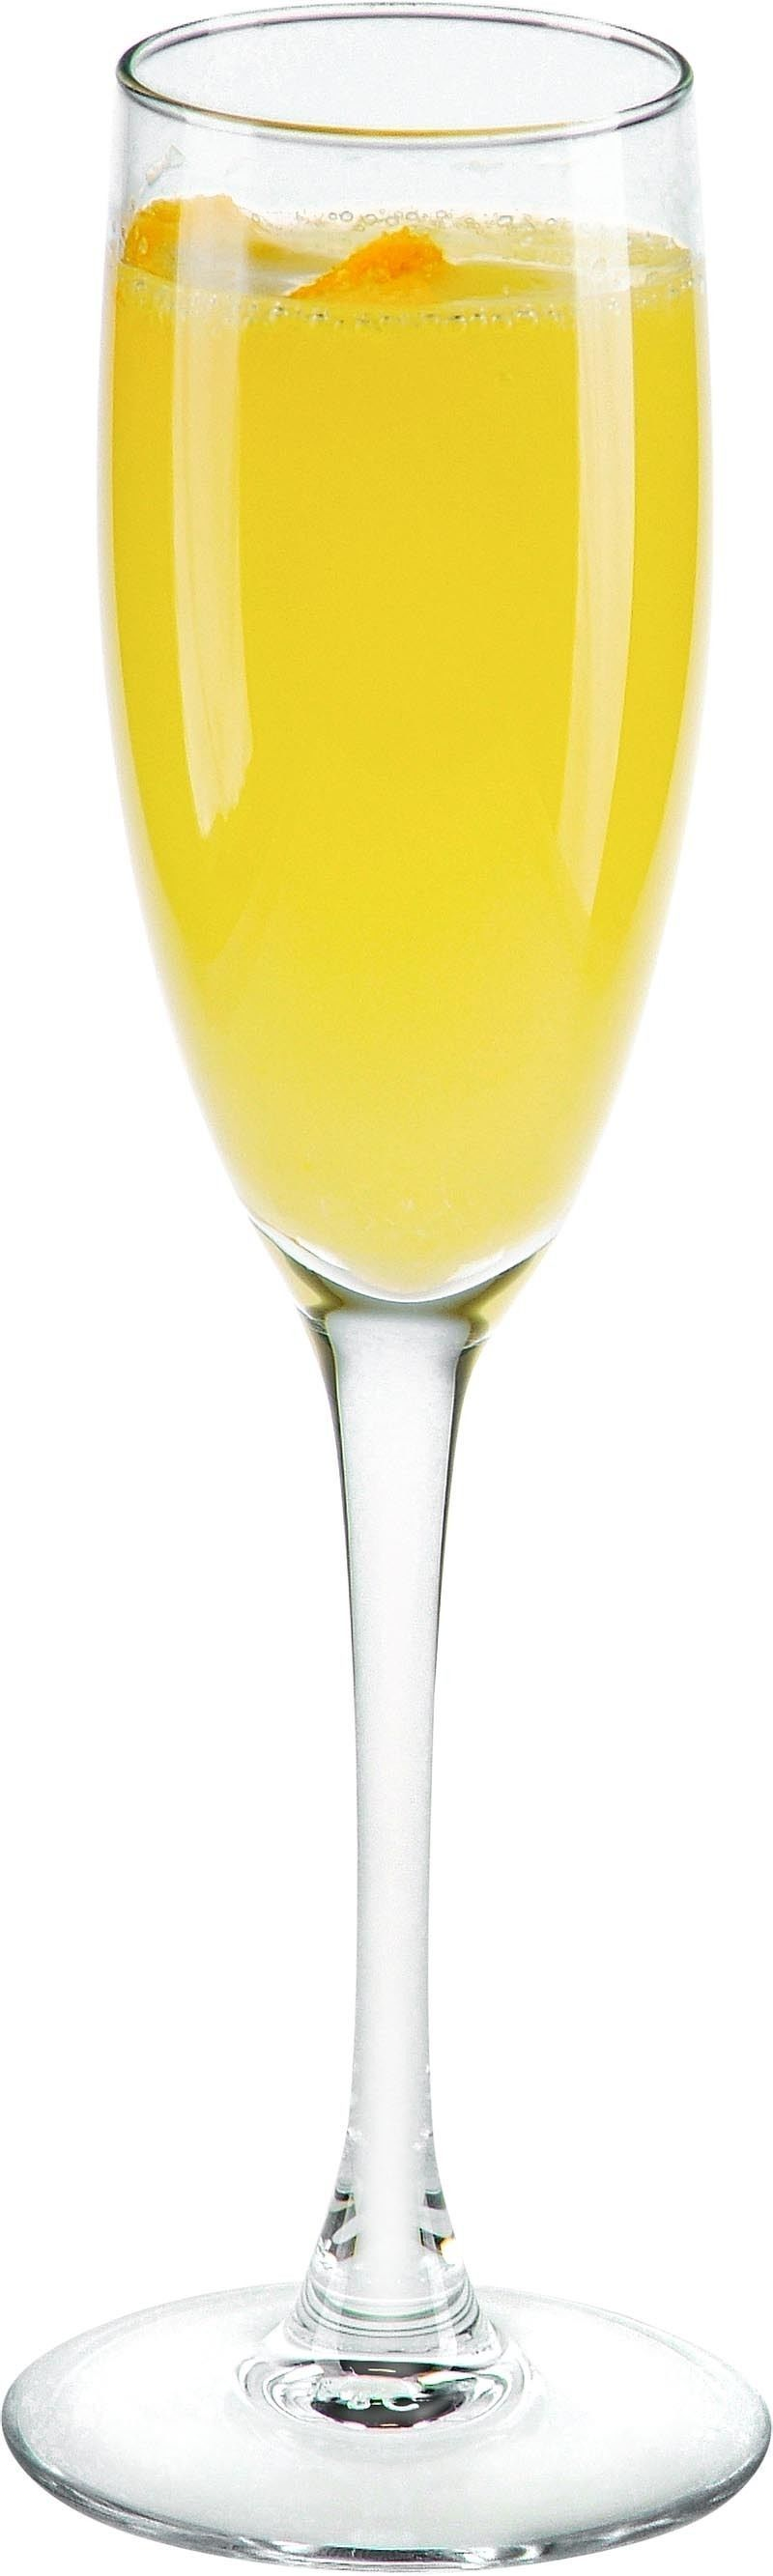 How to Make the Grand Mimosa